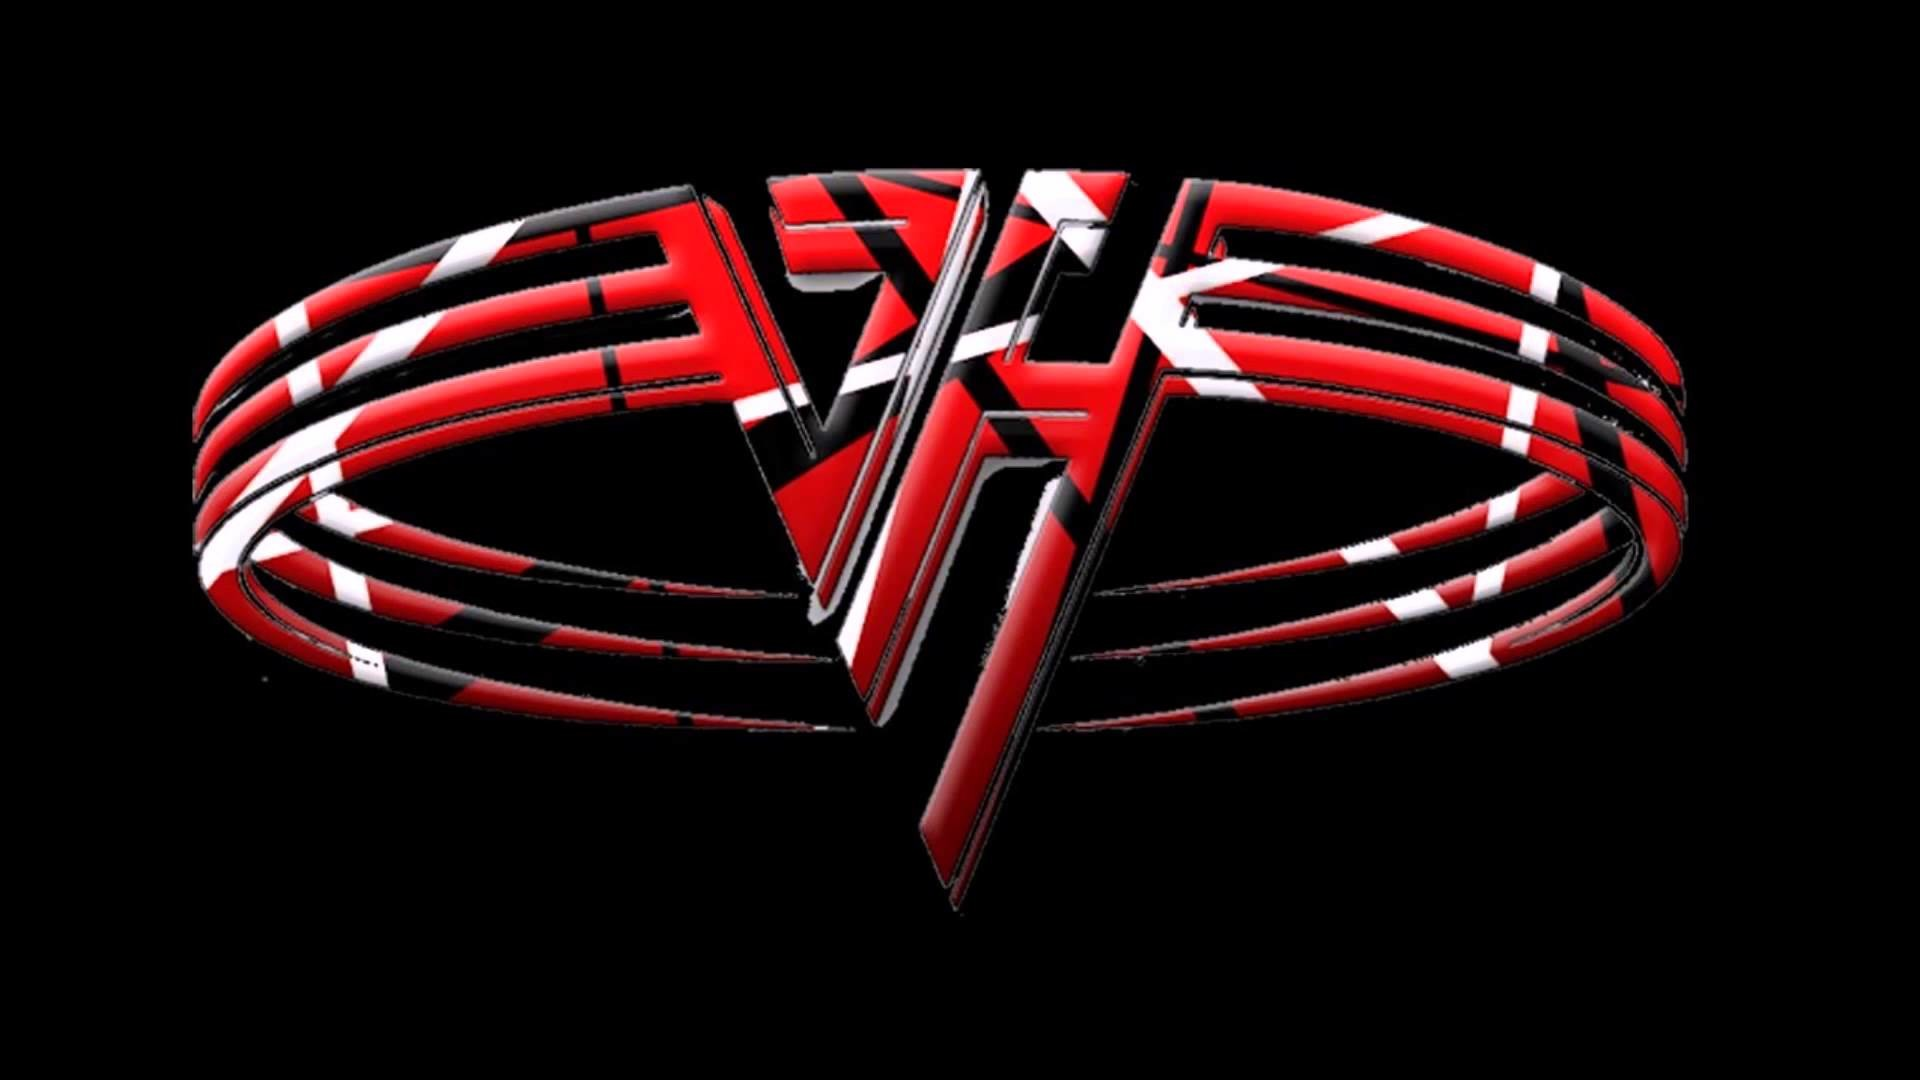 Van halen wallpaper hd 59 images - Van halen hd wallpaper ...